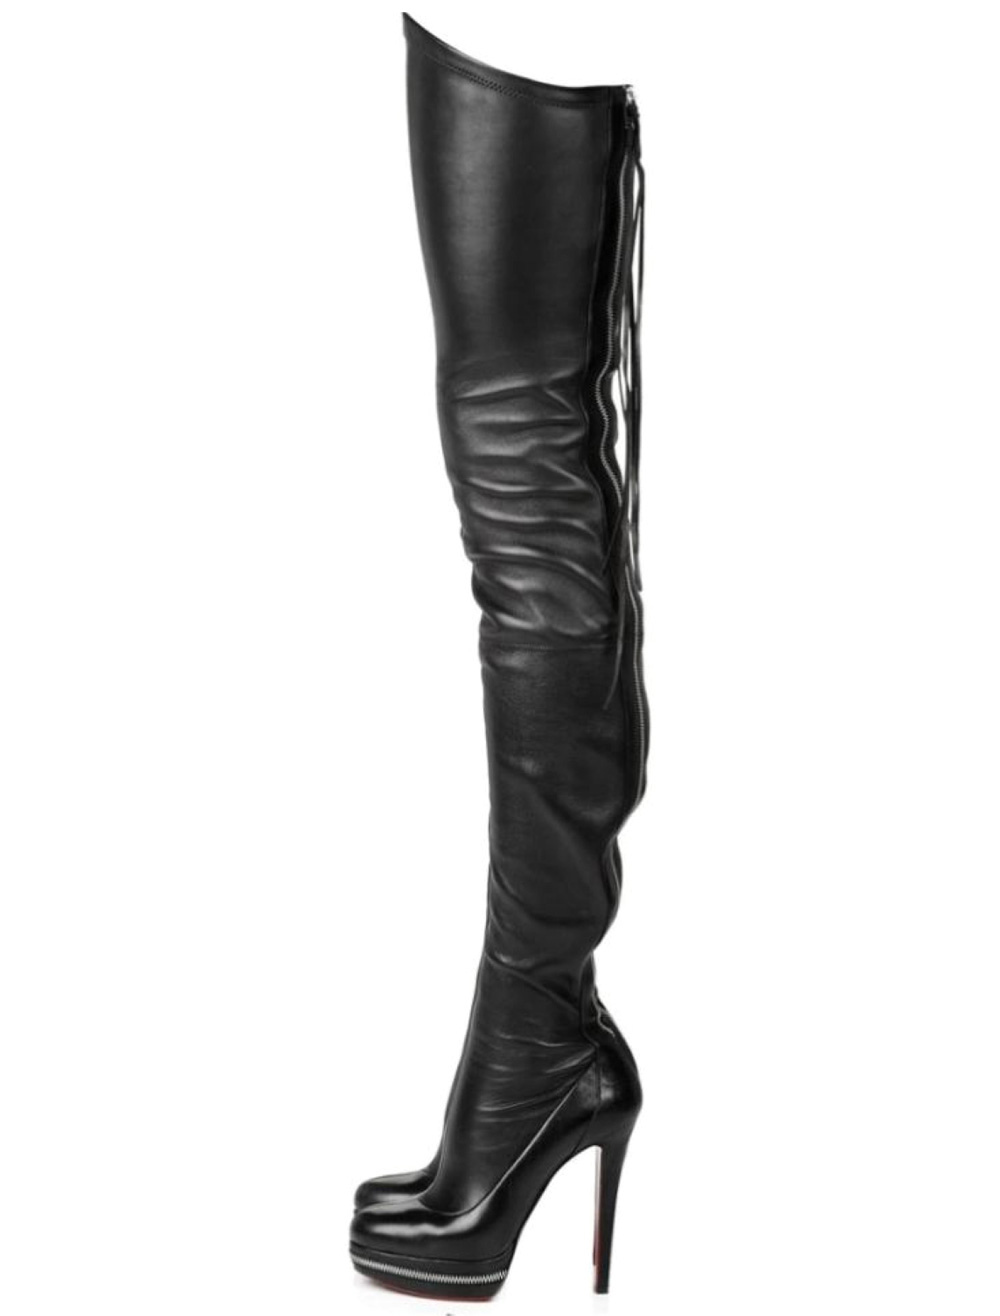 4a41d582cca Thigh High Boots High Heel Women's Black PU Leather Over Knee Boots -  Milanoo.com